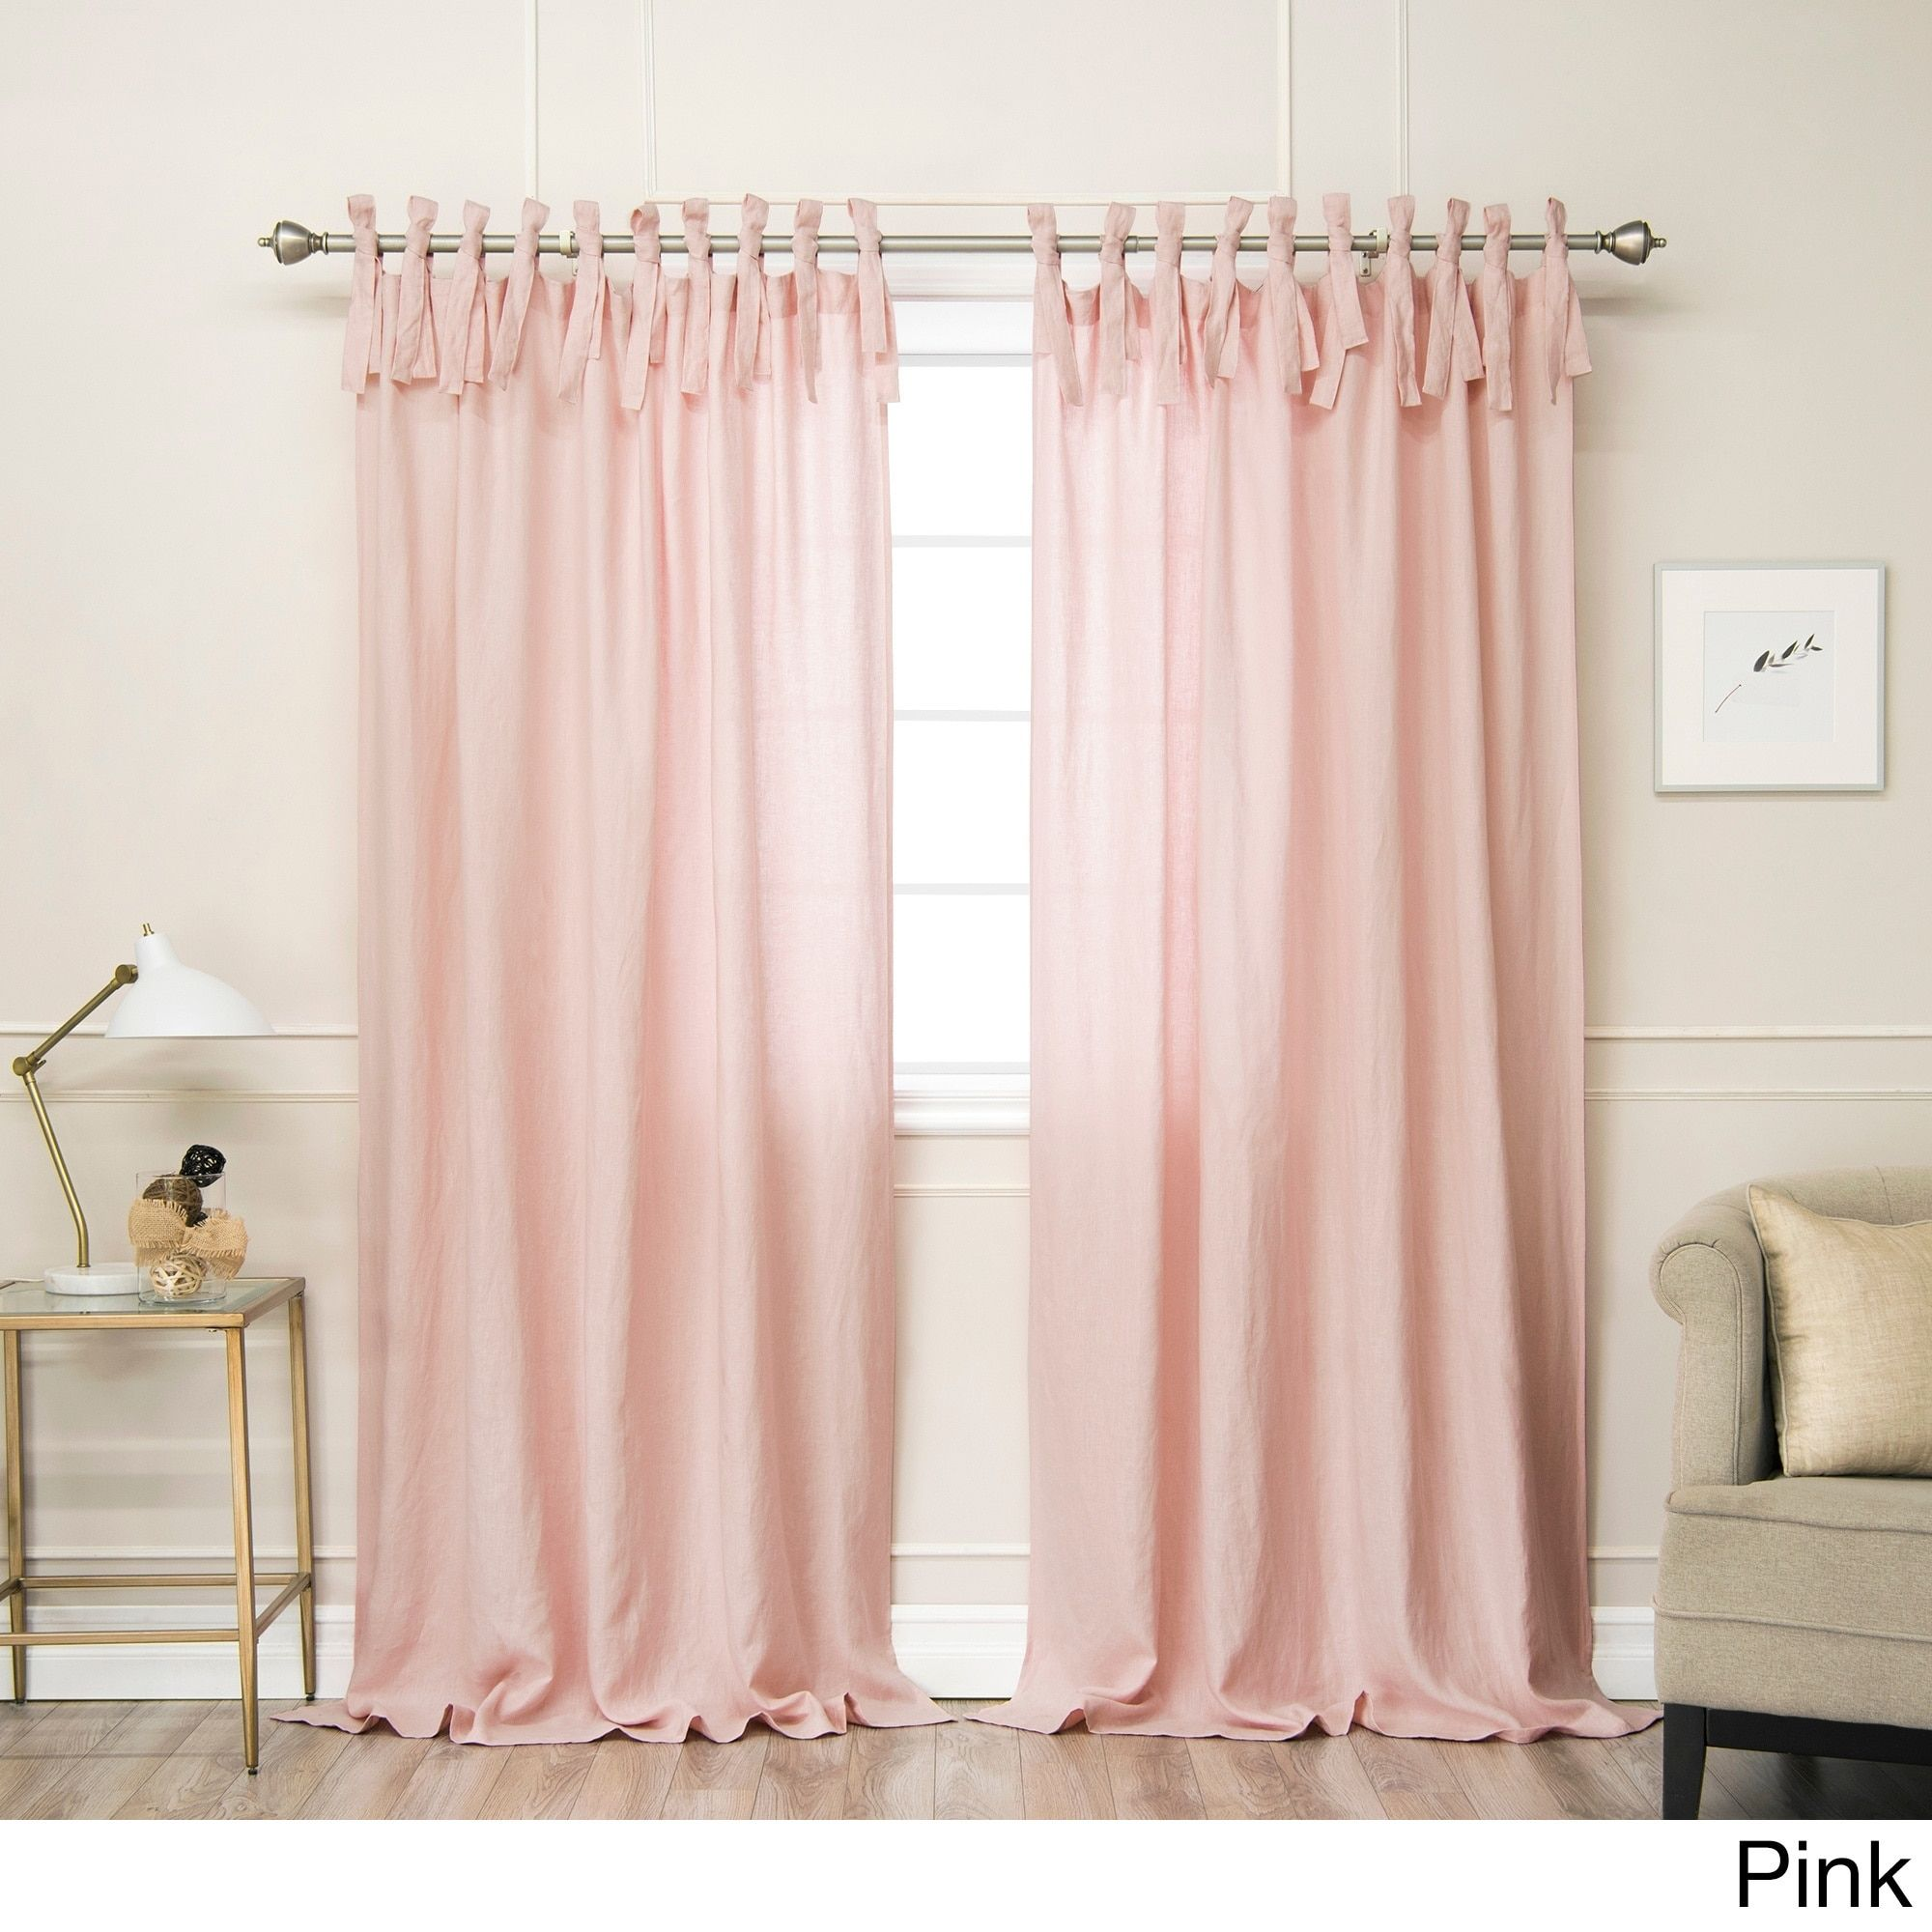 Aurora Home Belgian Flax Linen Tie Top Curtain Panel N A Pink 84 Inches